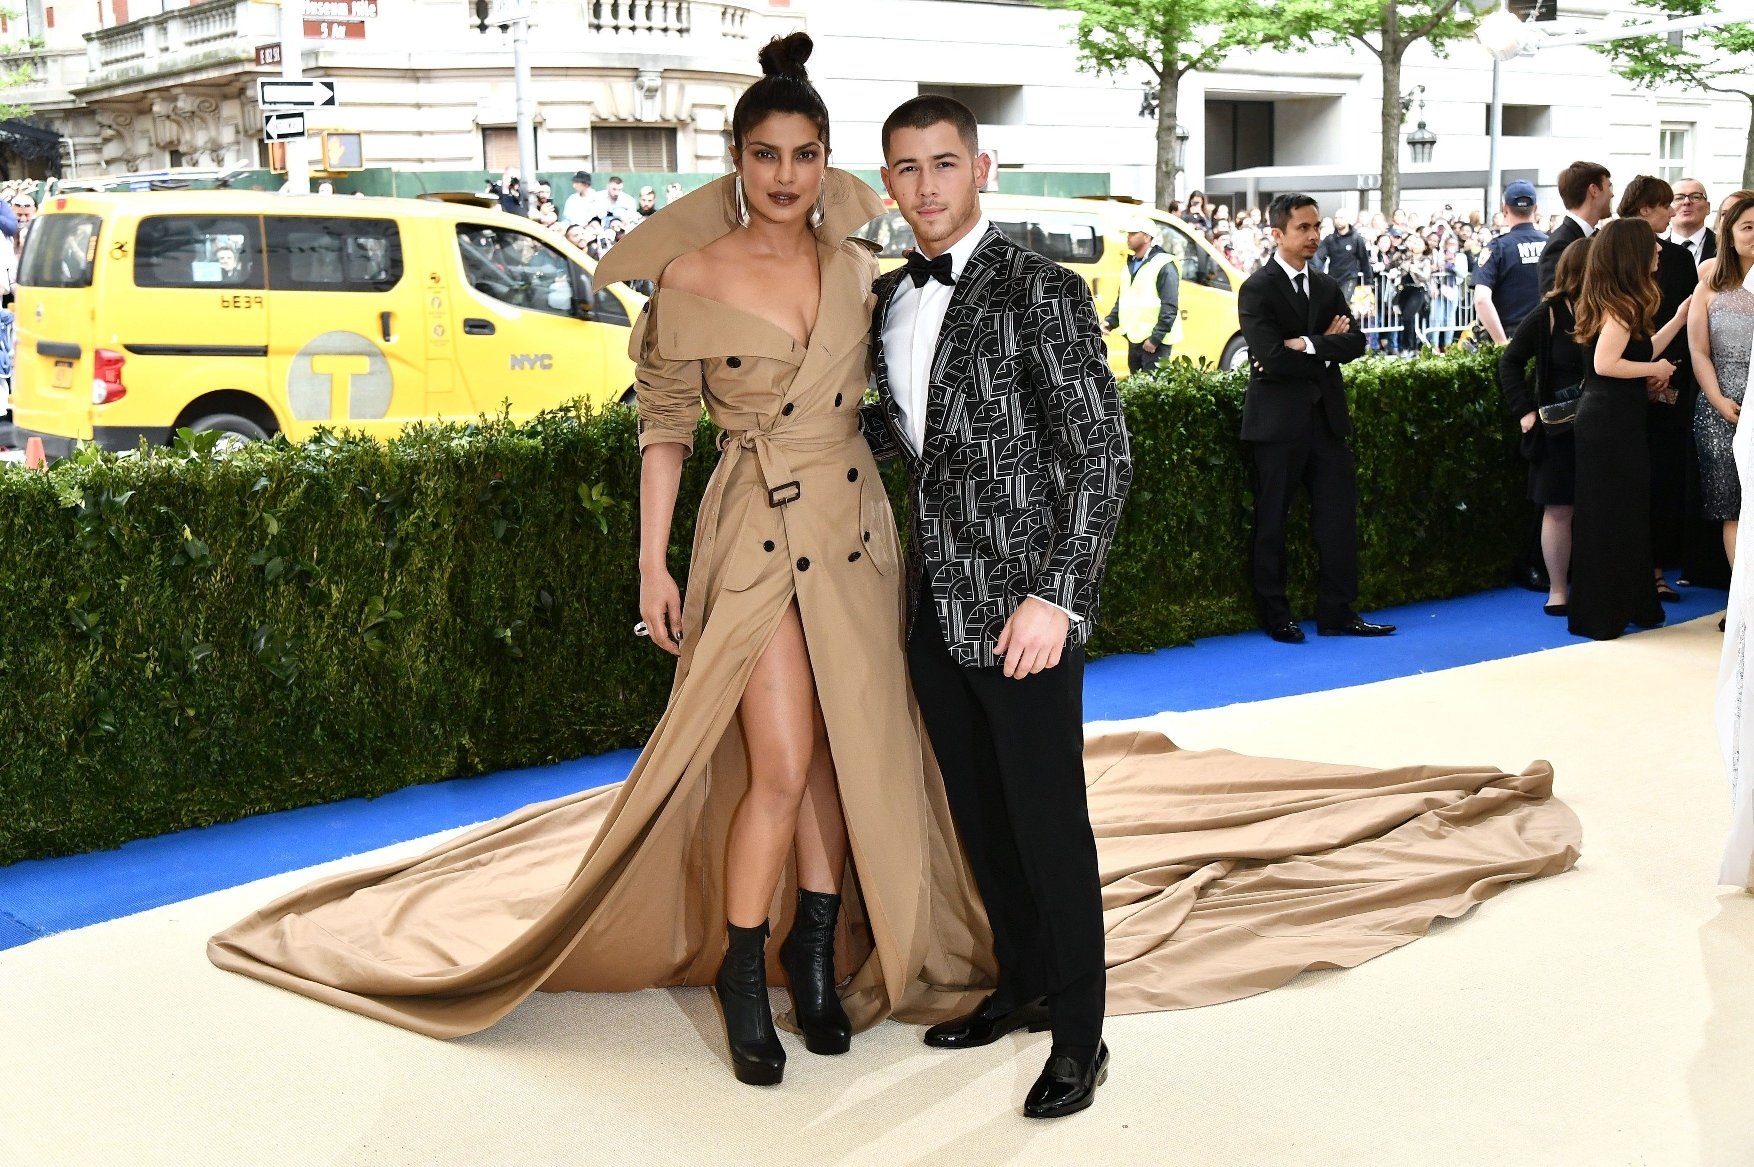 Priyanka Chopra and Nick Jonas The Costume Institute Benefit celebrating the opening of Rei Kawakubo/Comme des Garcons: Art of the In-Between, Arrivals, The Metropolitan Museum of Art, New York, USA - 01 May 2017, Image: 330885253, License: Rights-managed, Restrictions: , Model Release: no, Credit line: Profimedia, TEMP Rex Features